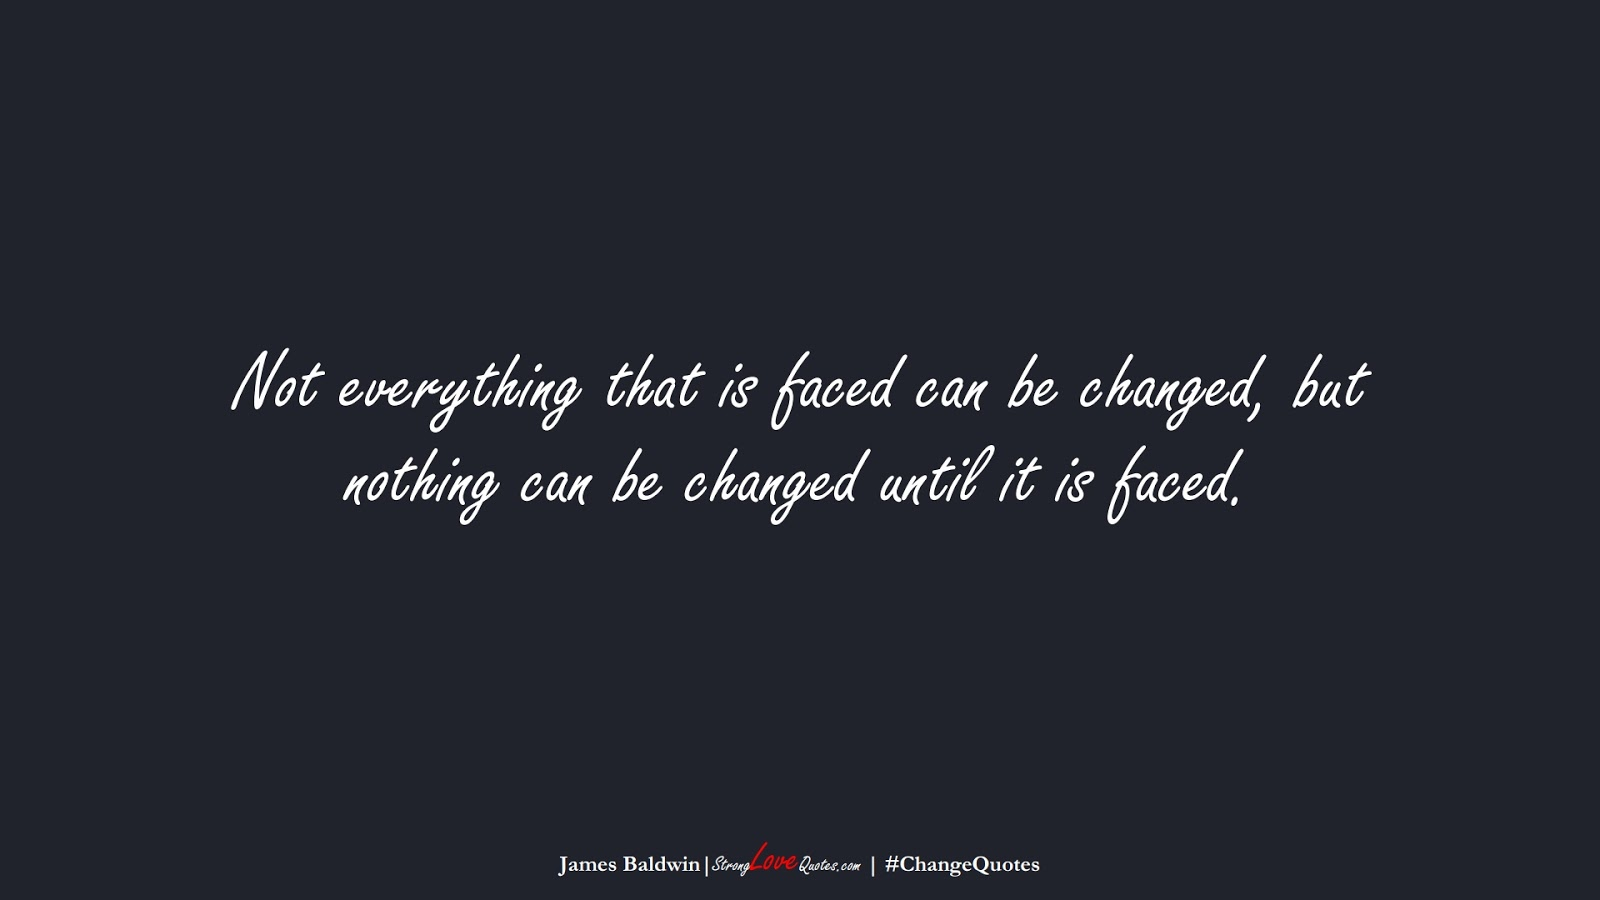 Not everything that is faced can be changed, but nothing can be changed until it is faced. (James Baldwin);  #ChangeQuotes